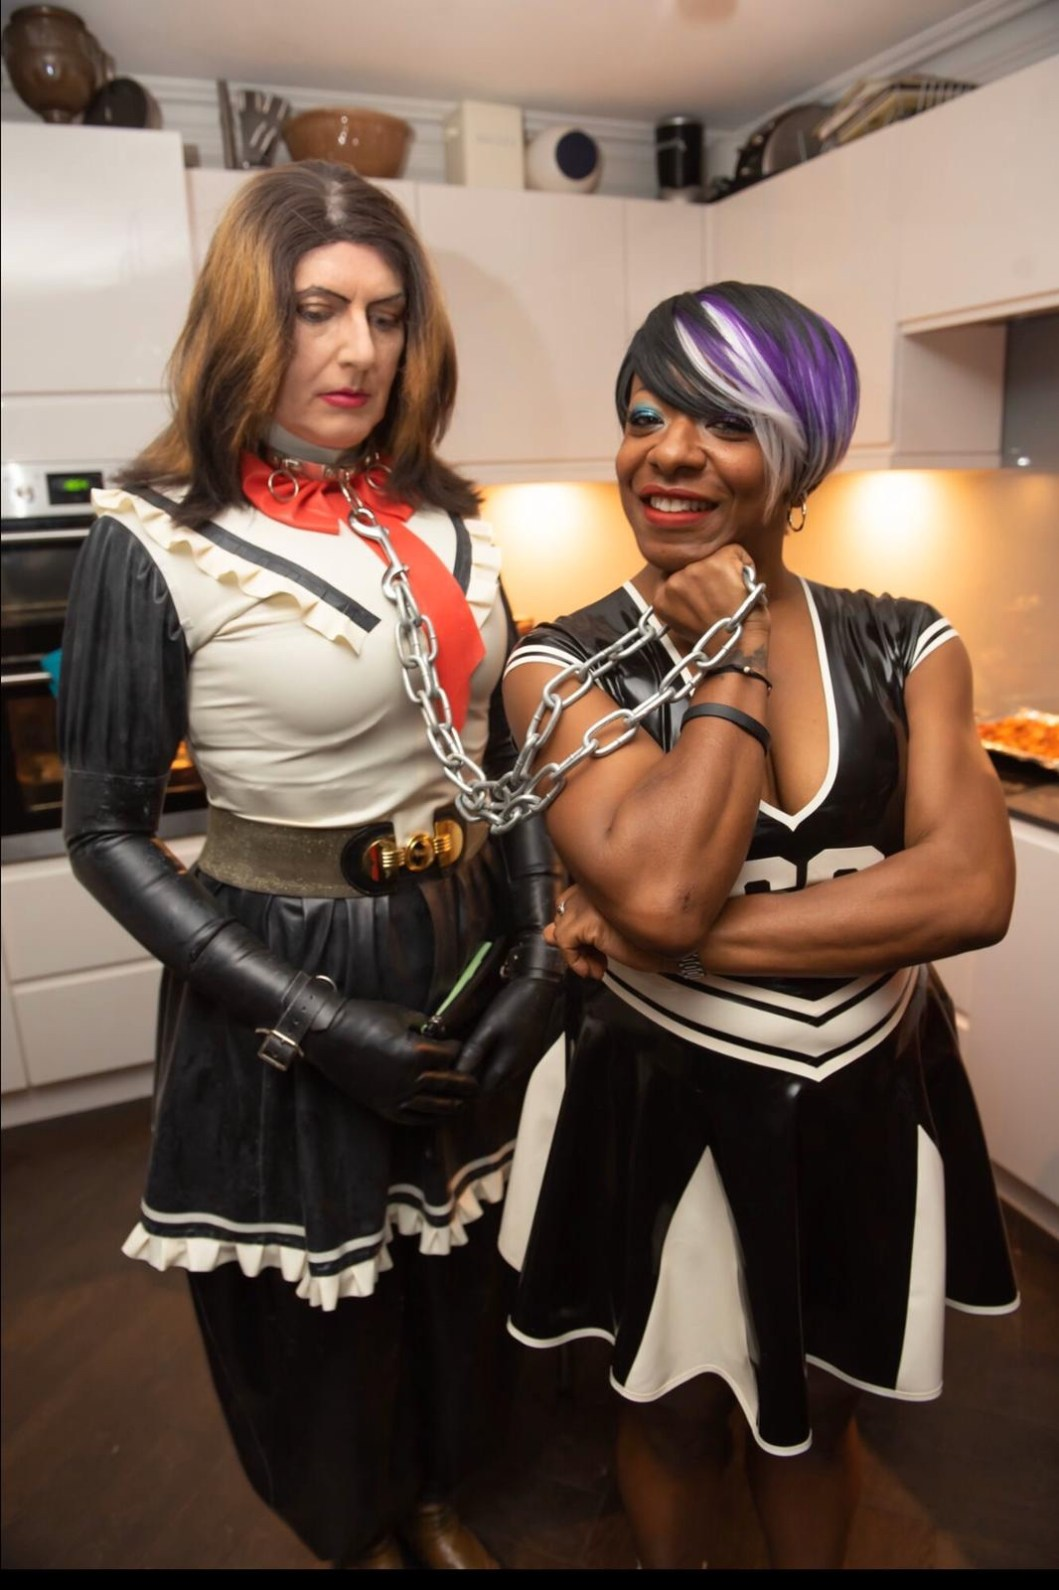 A dark haired woman stands in a rubber dress holding a sissy in rubber by a chain